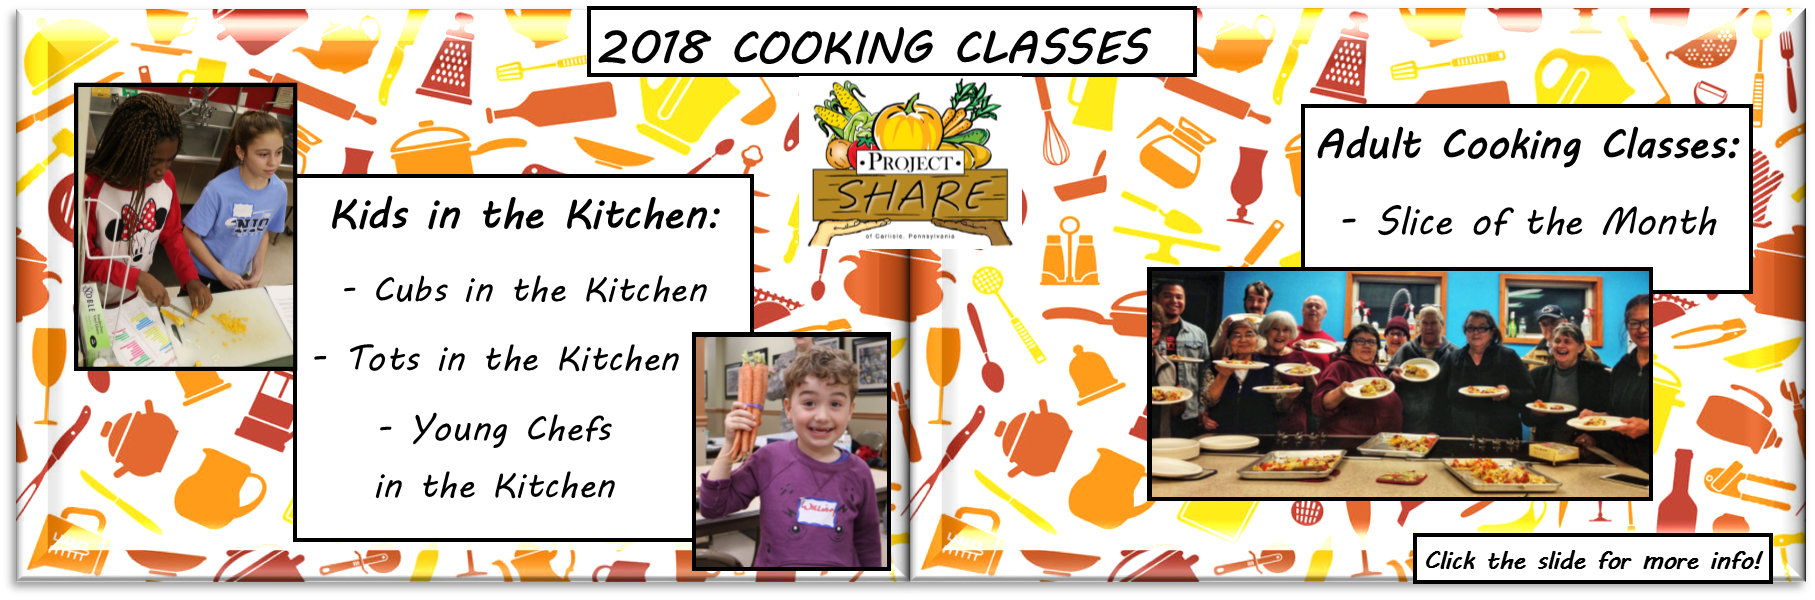 Kitchen Classes Slide New 2018